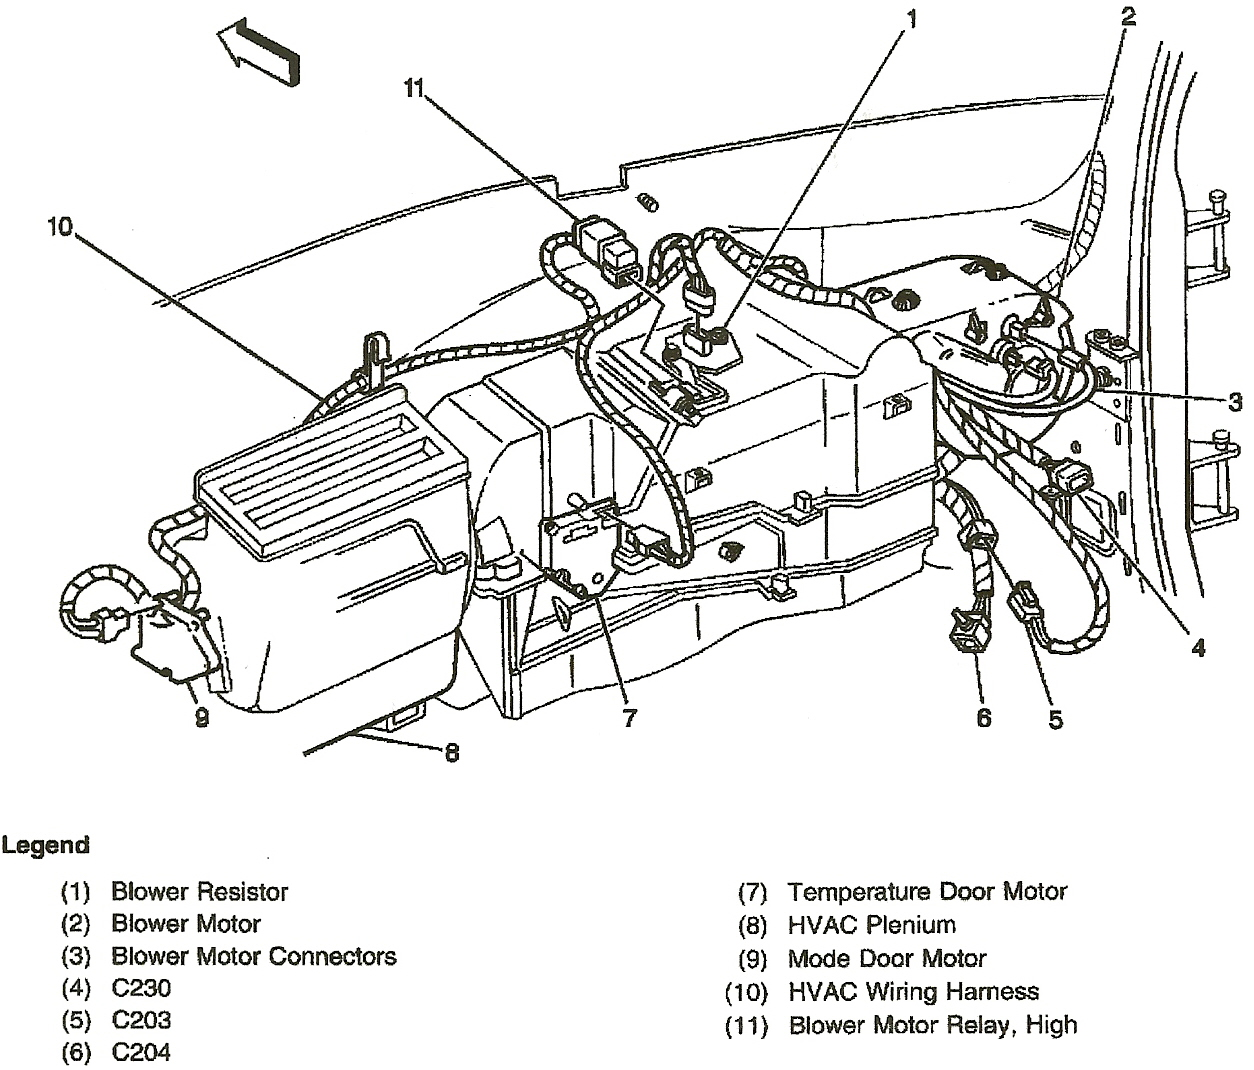 Gmc Envoy Engine Diagram Wiring Chevy 3 1 2002 Libraryhow To Test A Suburban Blower Motor My Pro